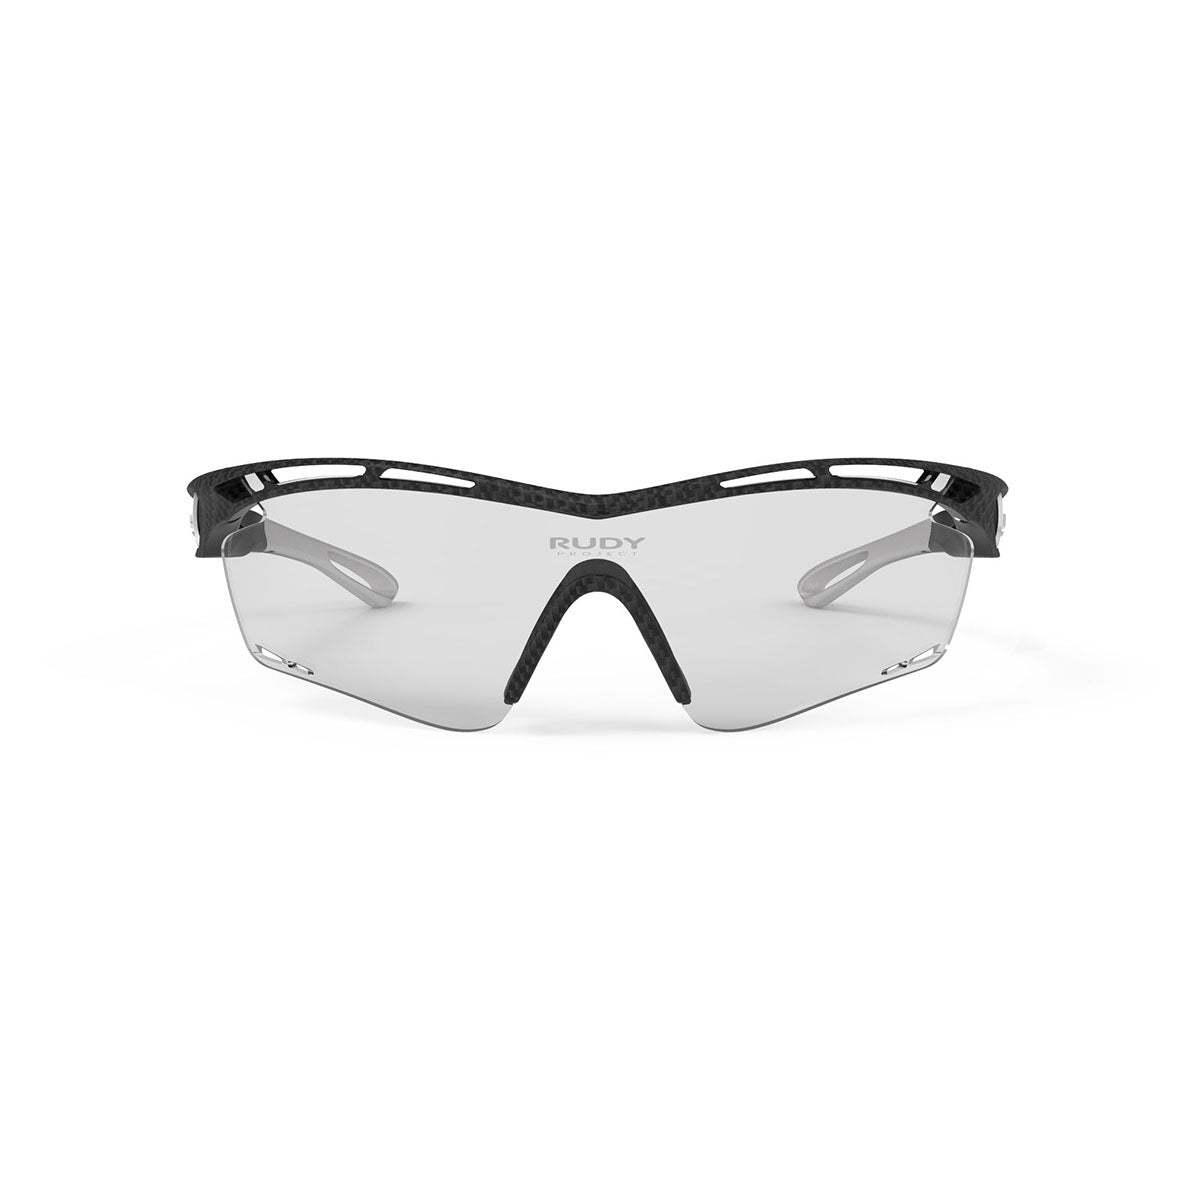 Rudy Project - Tralyx - frame color: Carbonium - lens color: ImpactX-2 Photochromic Clear to Laser Black - photo angle: Front View Variant Hover Image